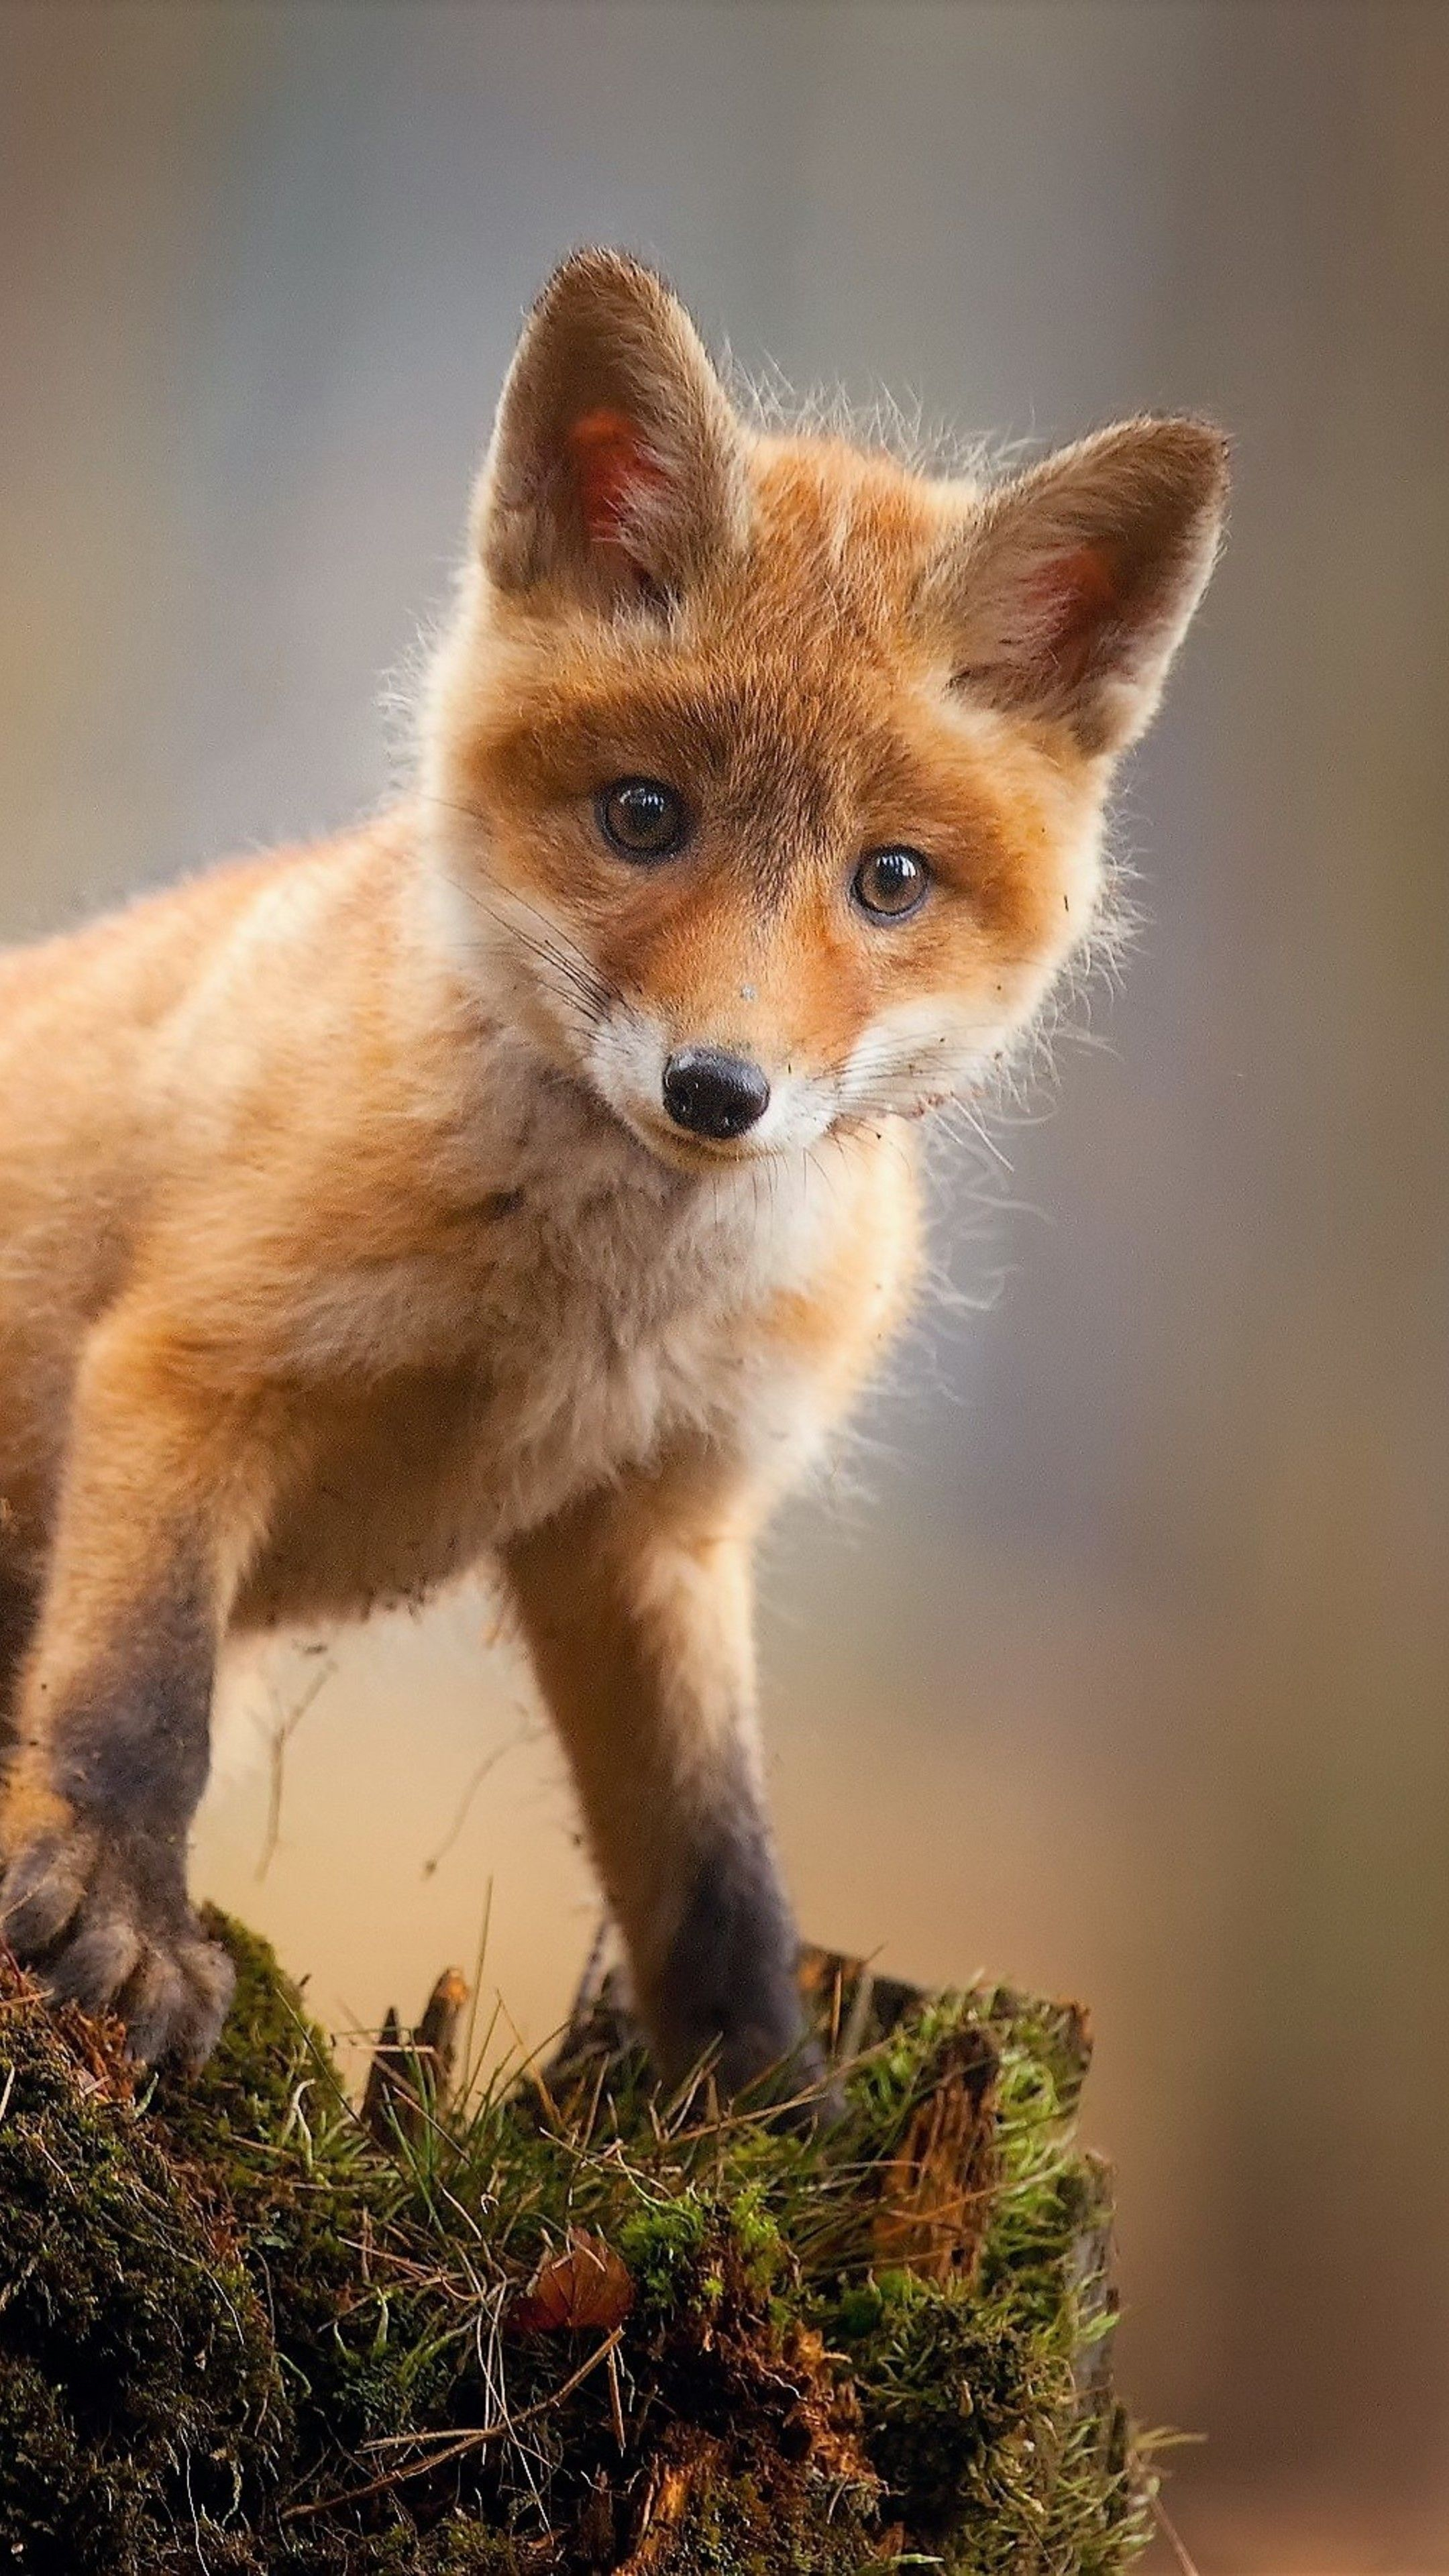 Animals Fox Cub Baby Animal Cute Hd wallpapers hd 4k